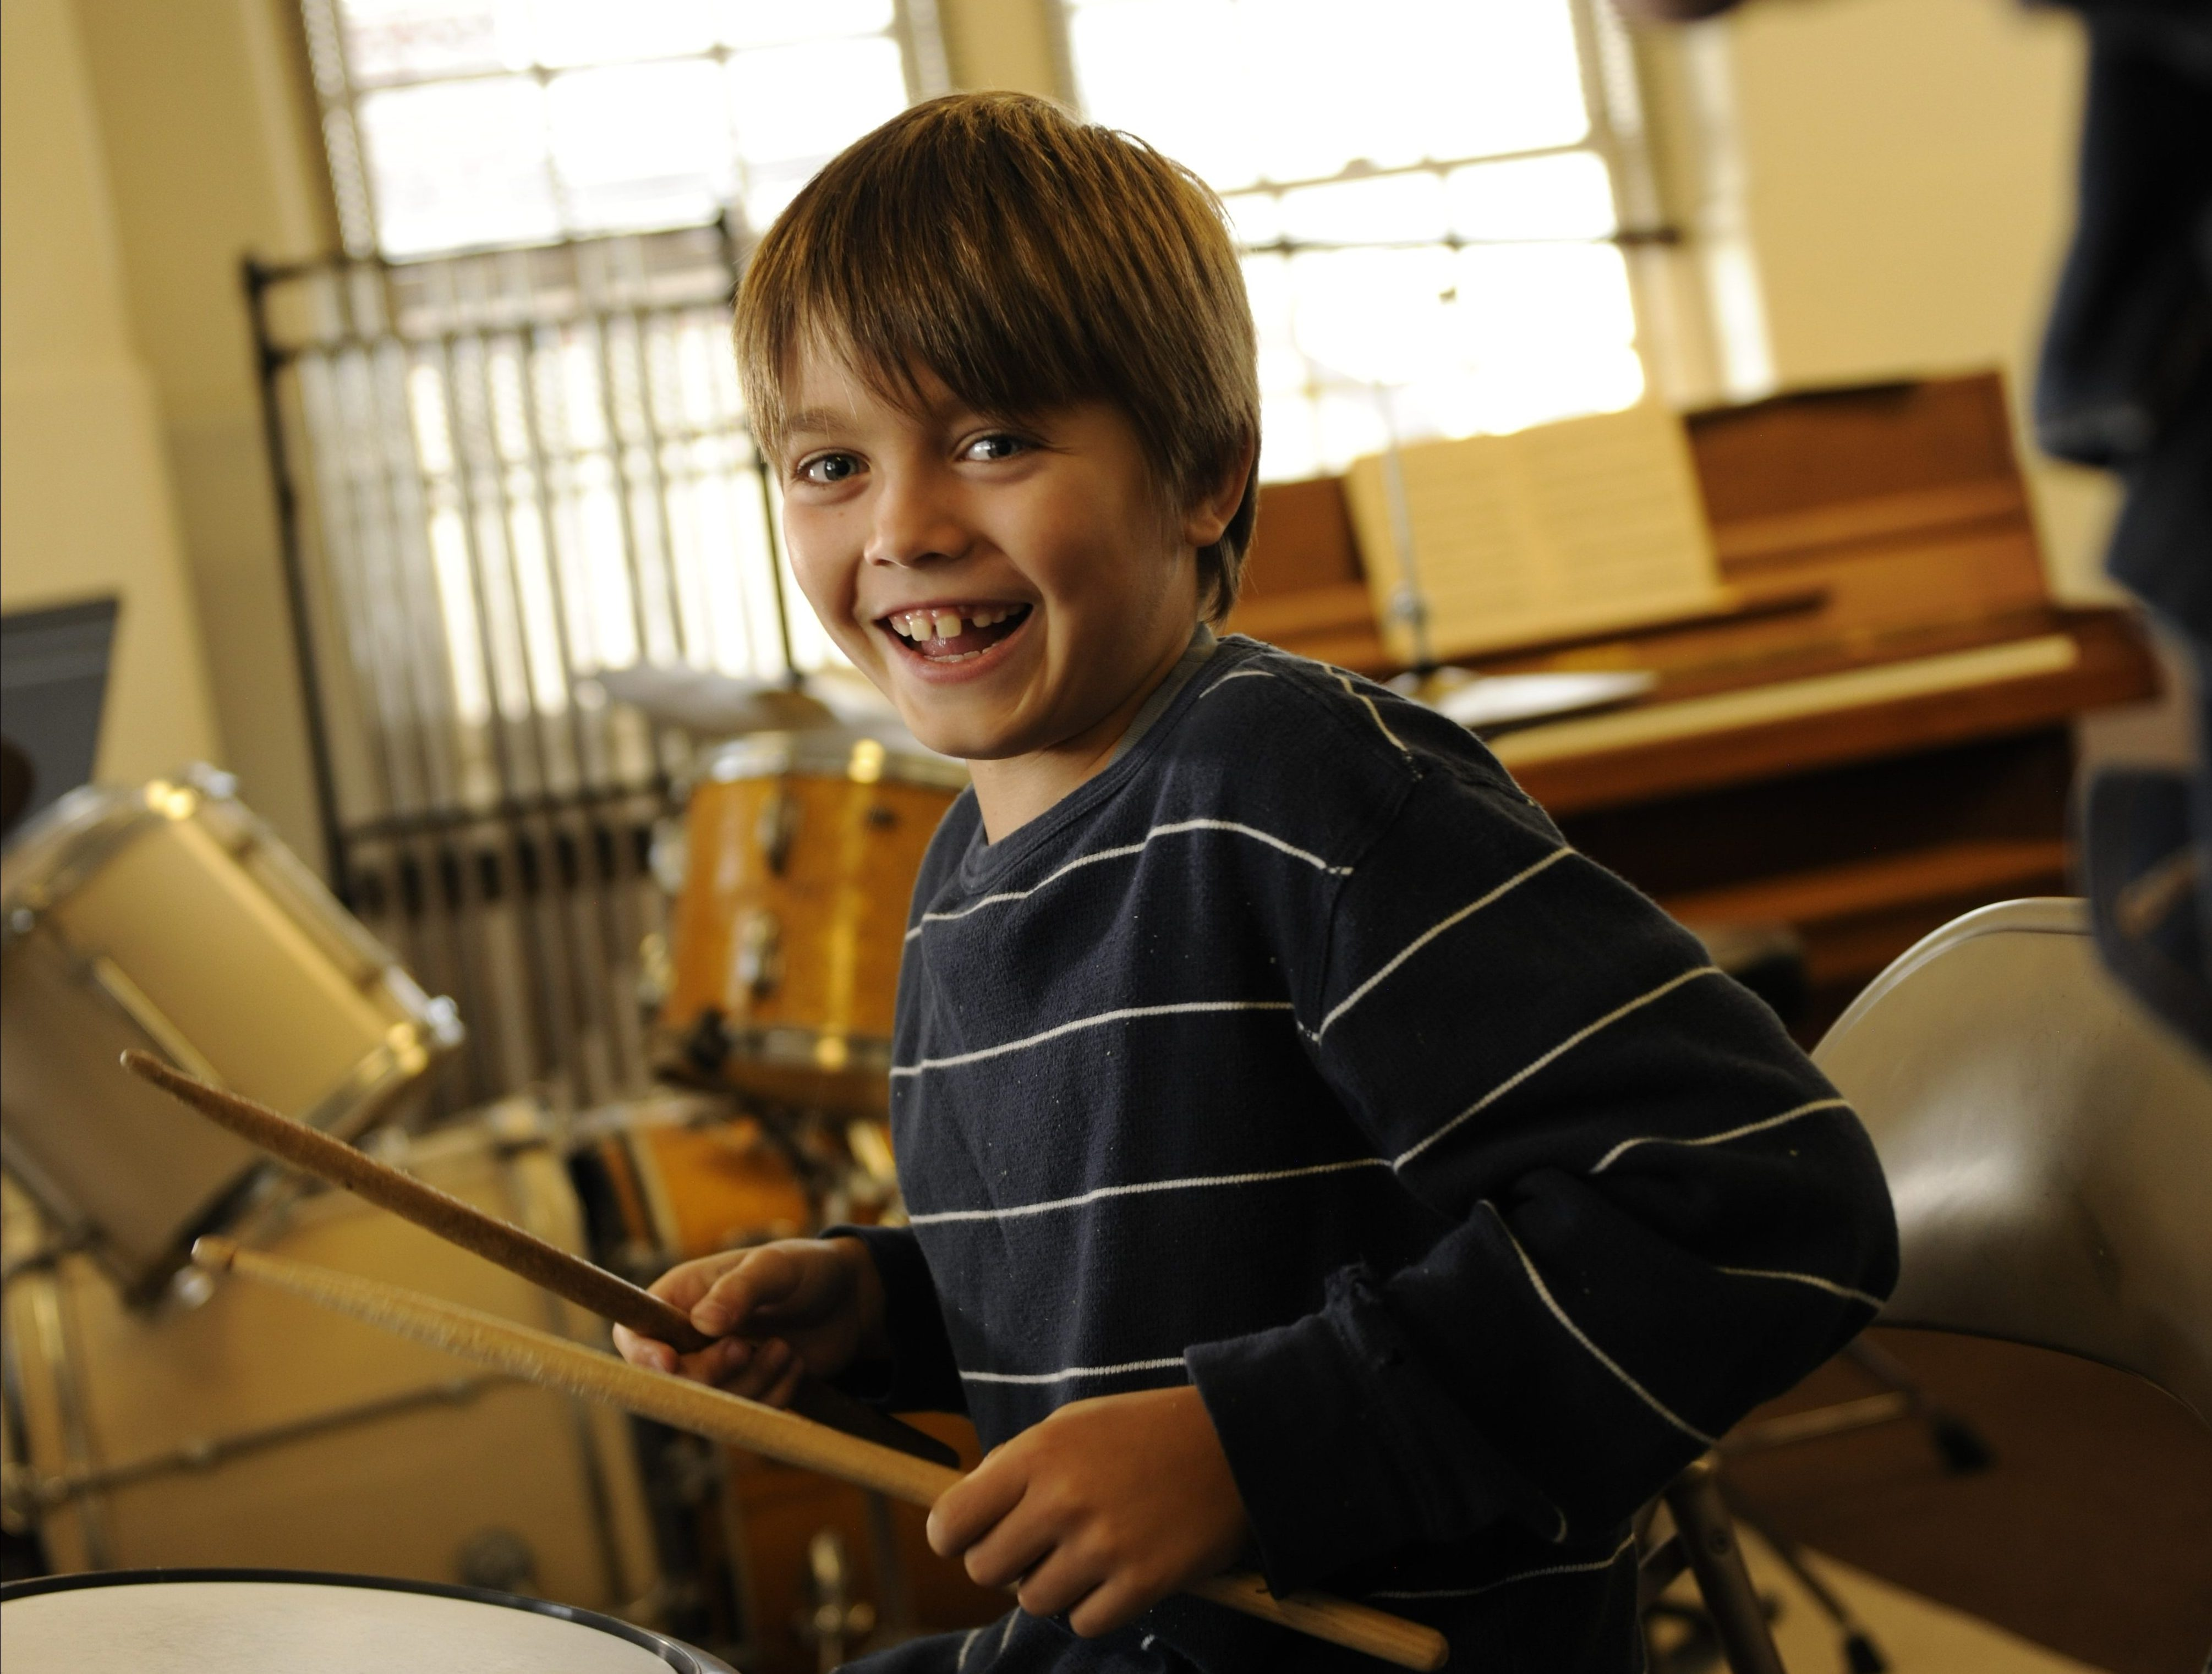 A Settlement student shows off his drumming skills with a smile